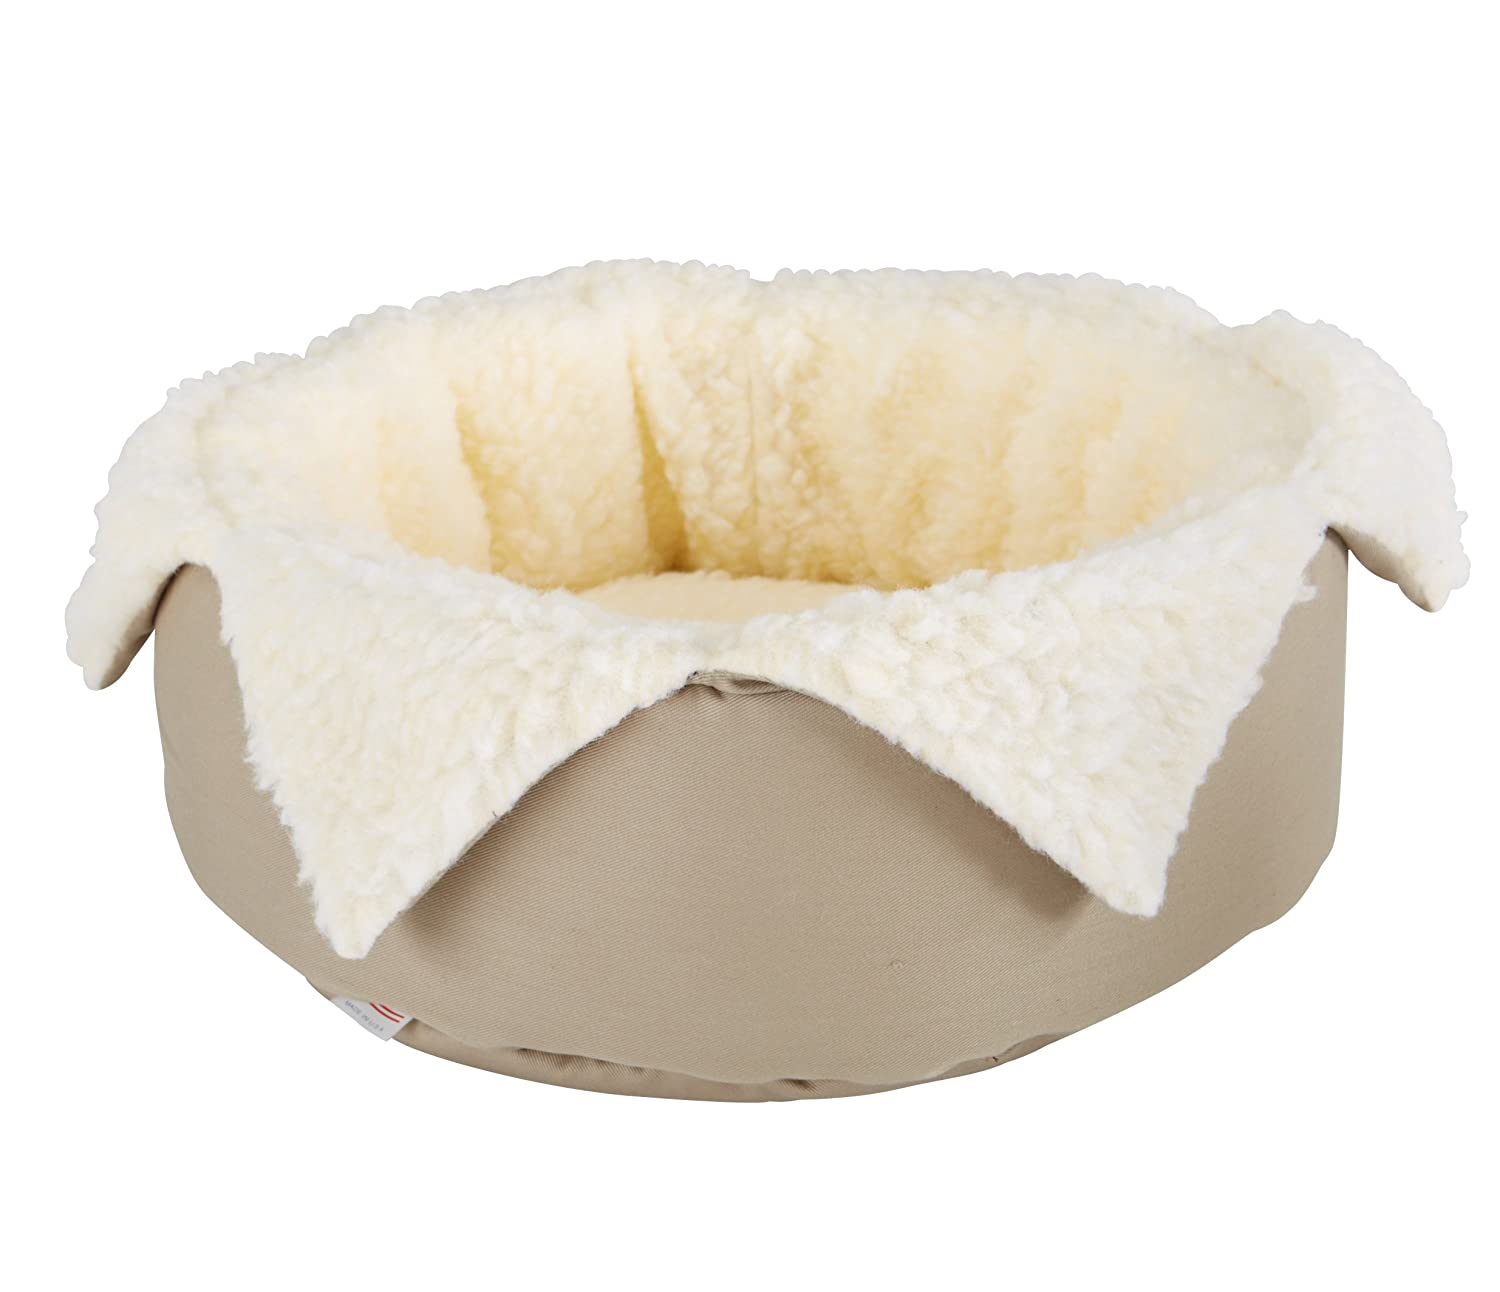 Khaki Great State Pet Round Jester Bed for Pets, 15-Inch, Khaki